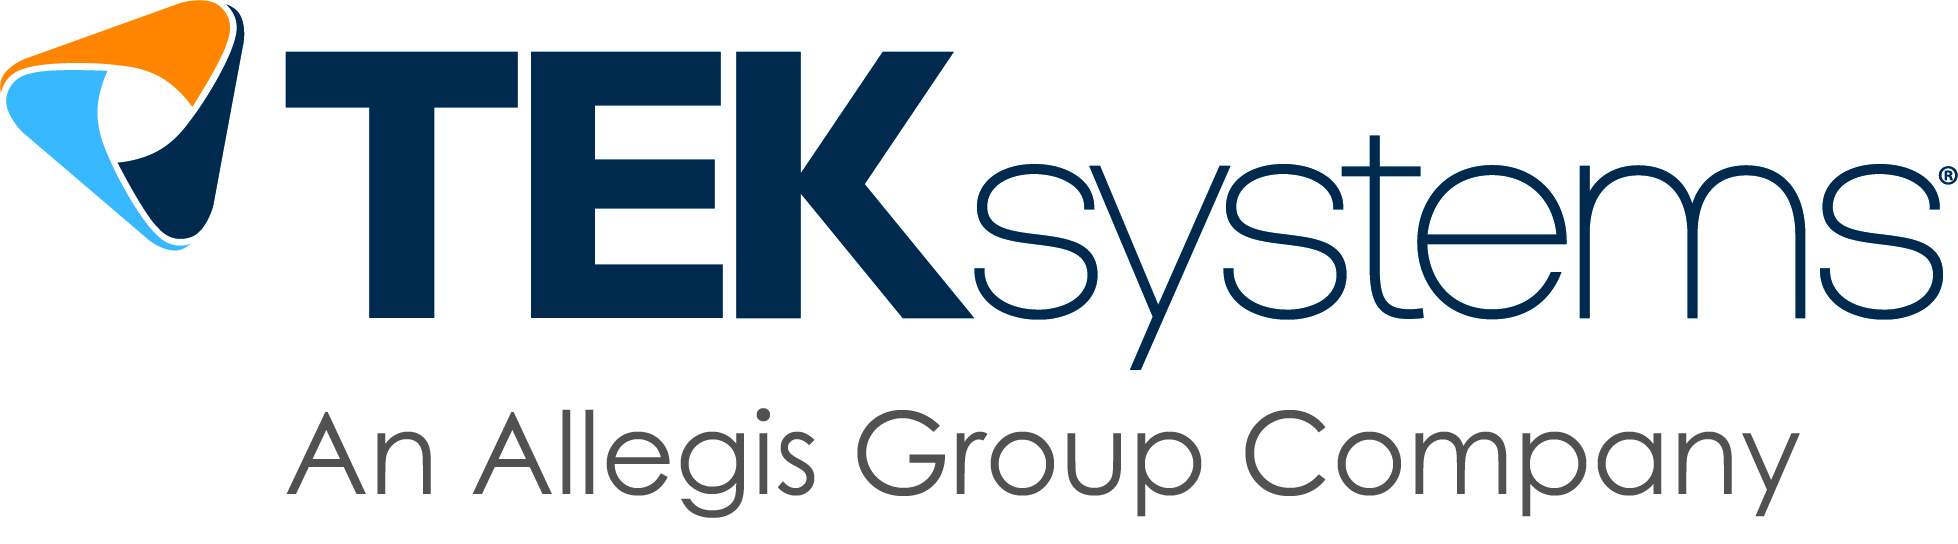 TEKsystems with Own Change tagline logo